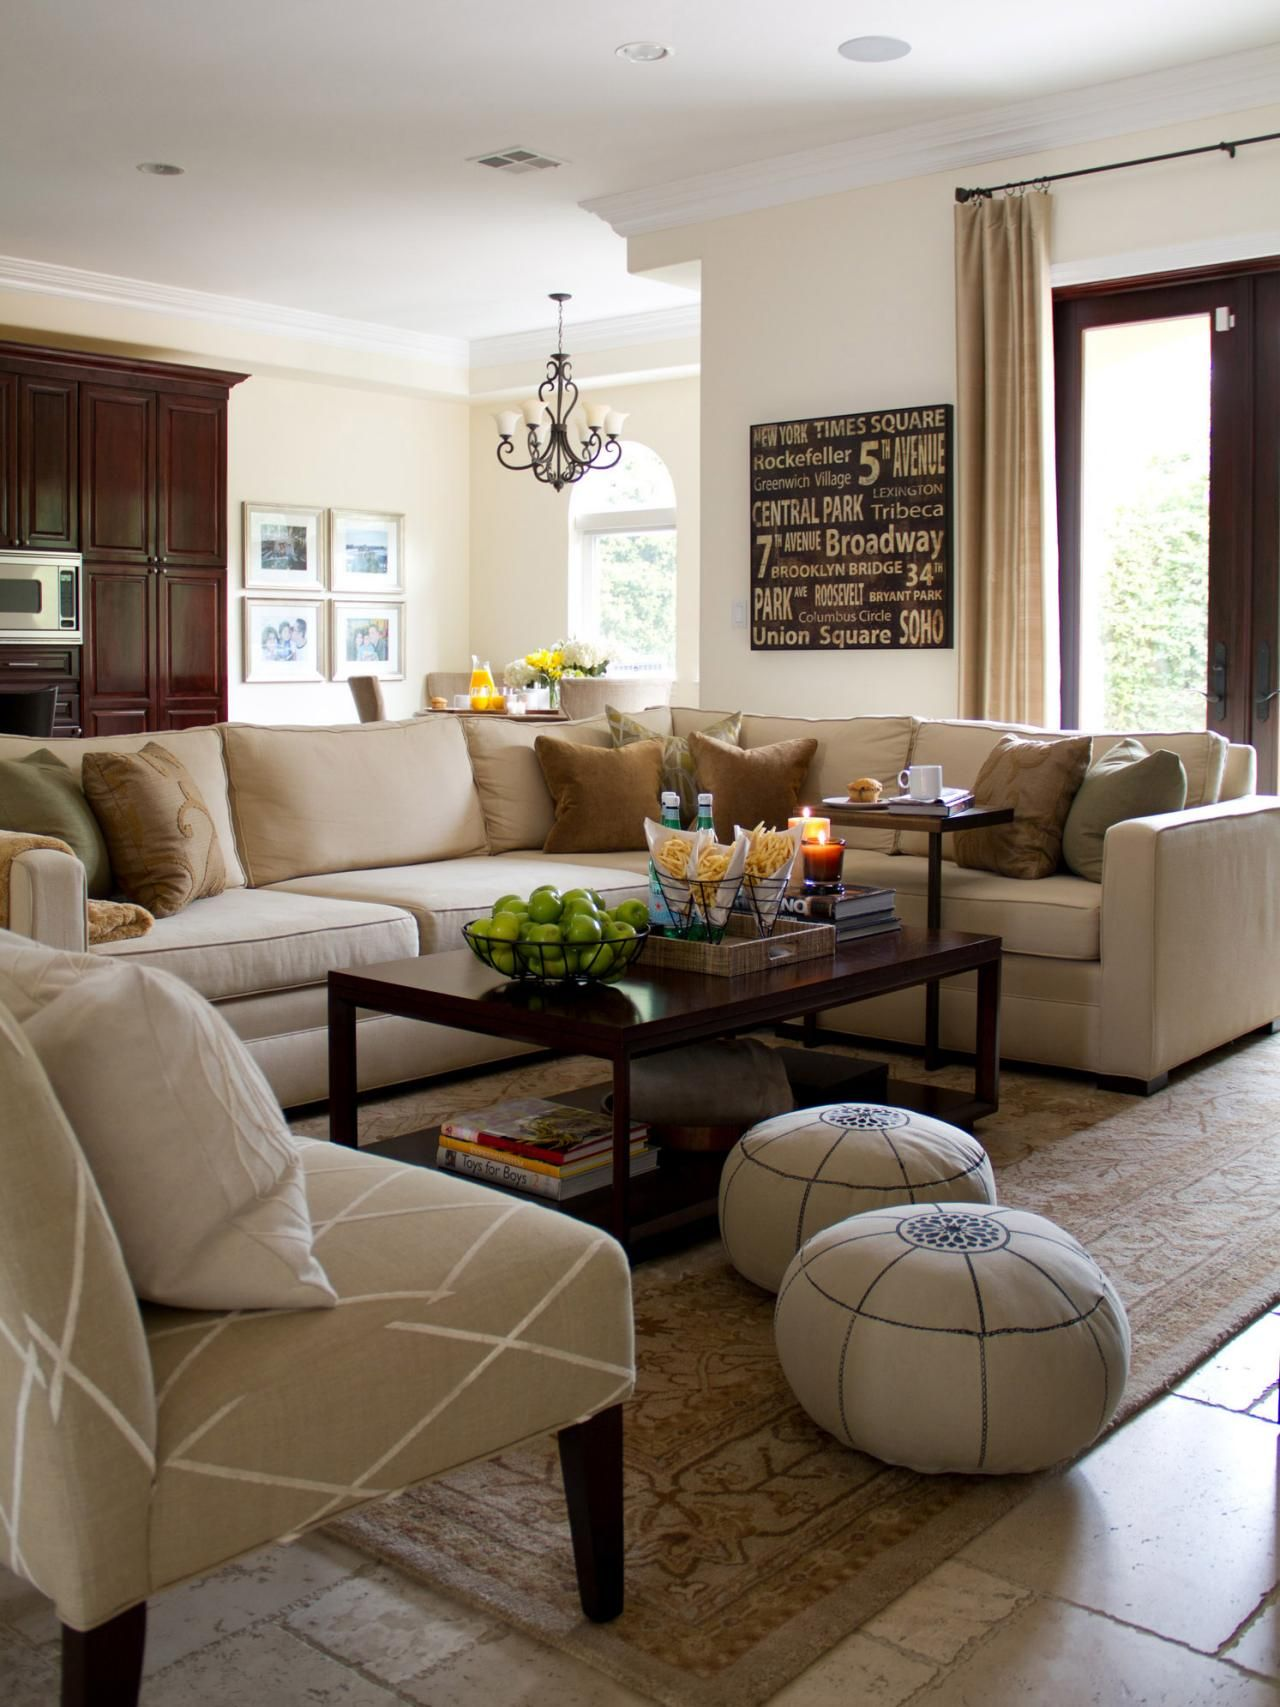 Living Room Casual Family Room Ideas 1000 images about living room ideas on pinterest tan couches gray walls and sectional sets